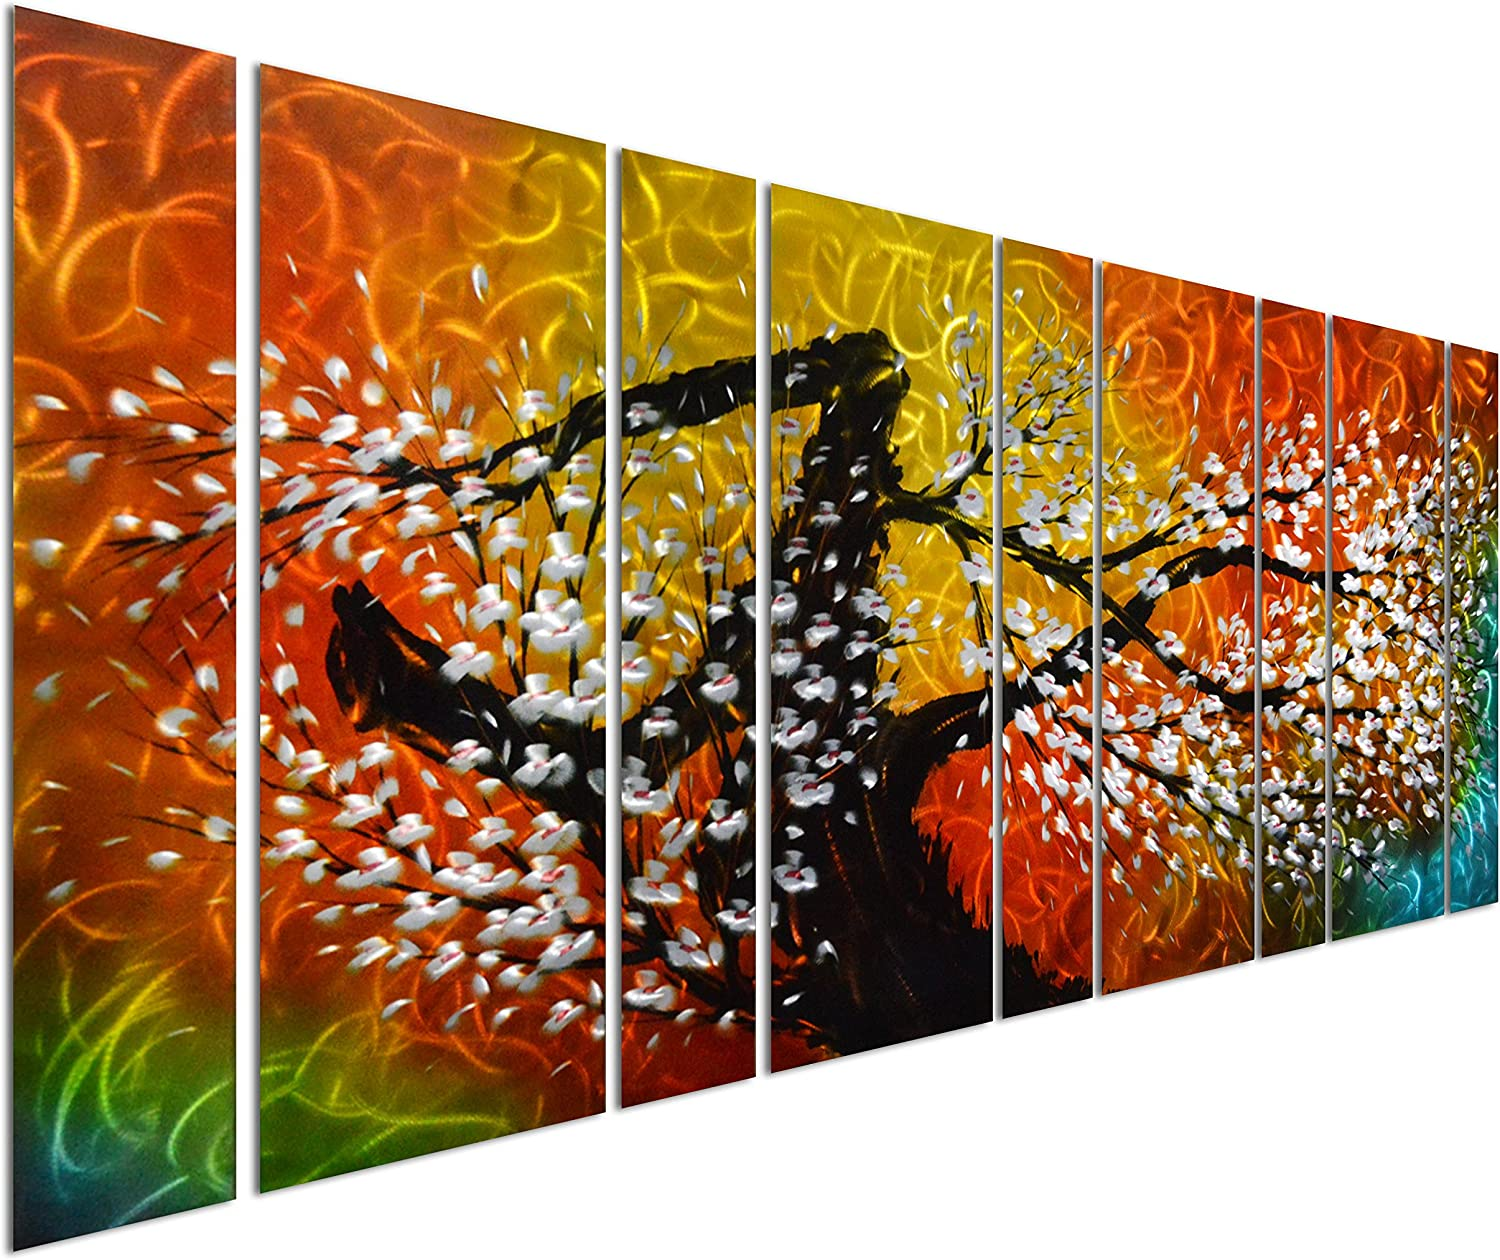 "Pure Art Gigantic Tree of Life Metal Wall Art Decor, Oversize Colorful 3D Artwork for Modern, Contemporary and Traditional Decor, 9-Panels Measures 86""x 32"", Great for Indoor and Outdoor"